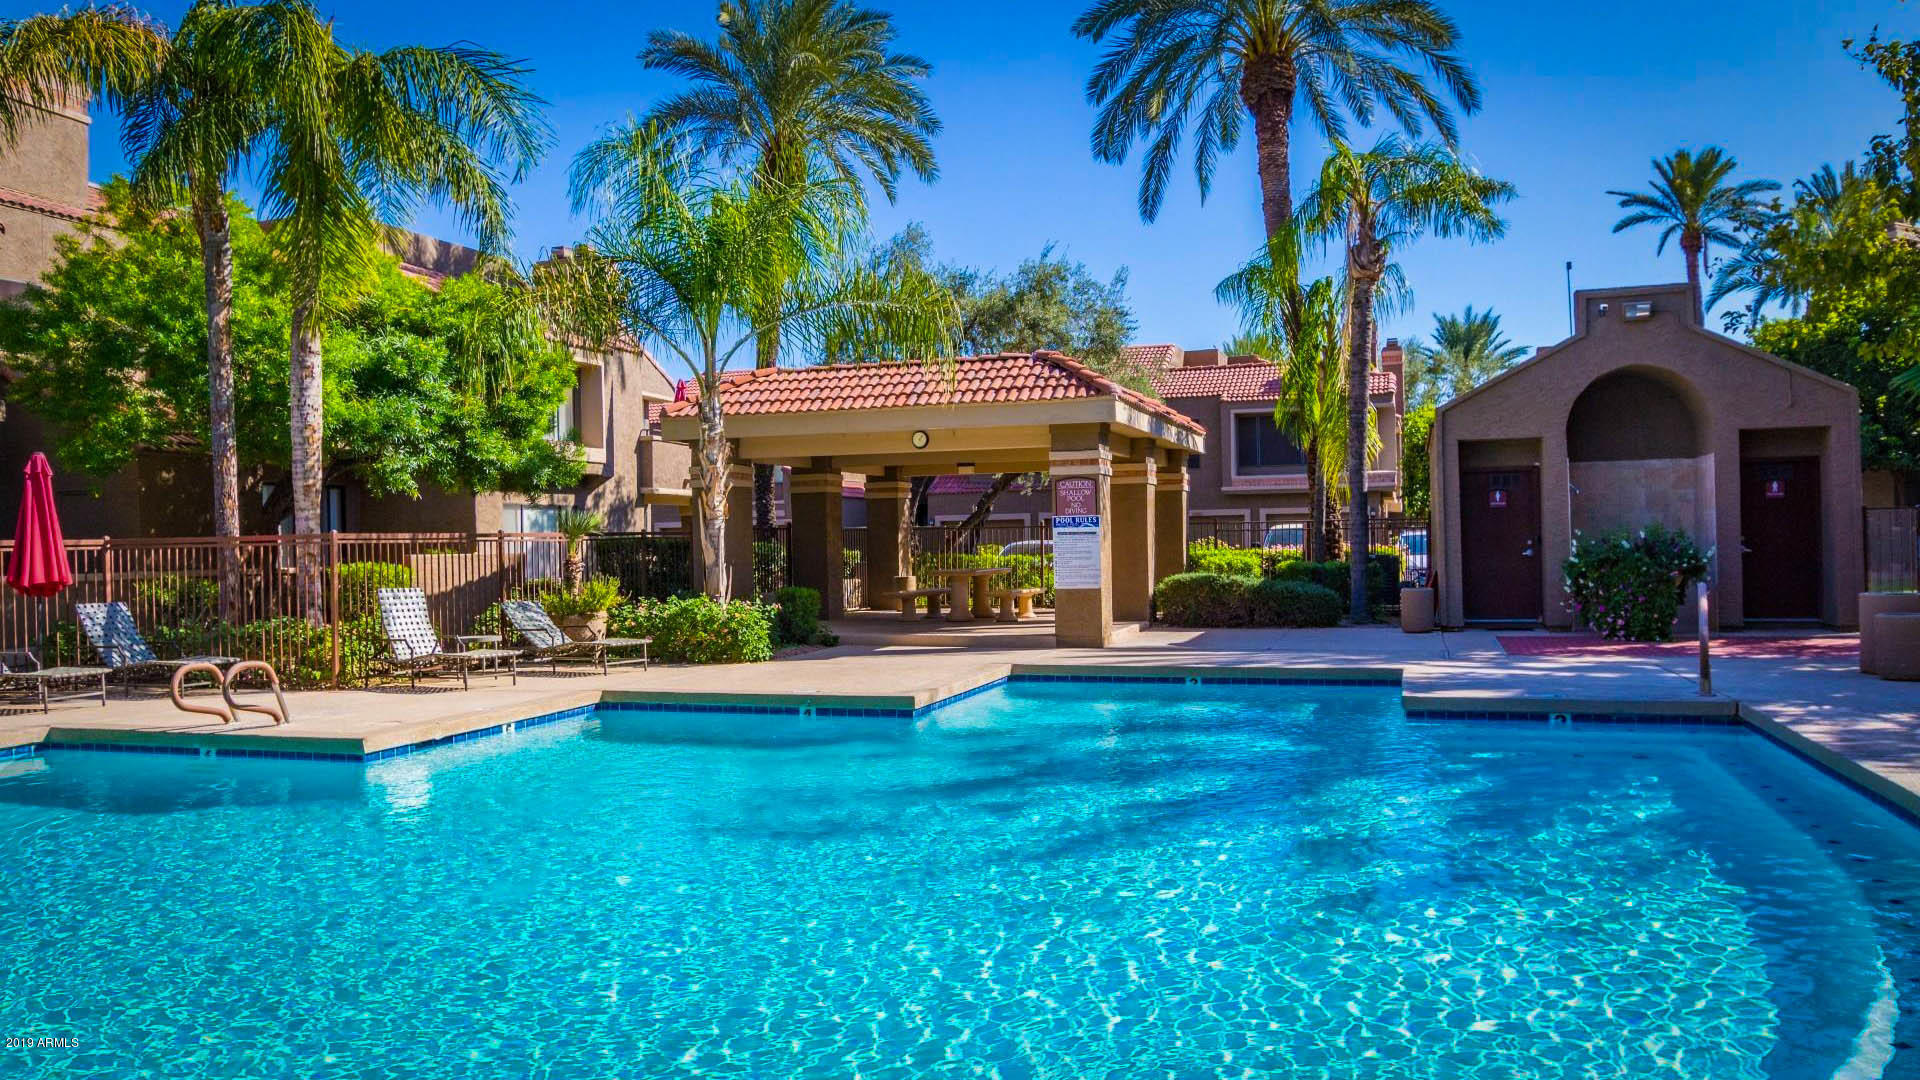 MLS 5934716 5122 E SHEA Boulevard Unit 2122 Building 23, Scottsdale, AZ 85254 Scottsdale AZ Golf